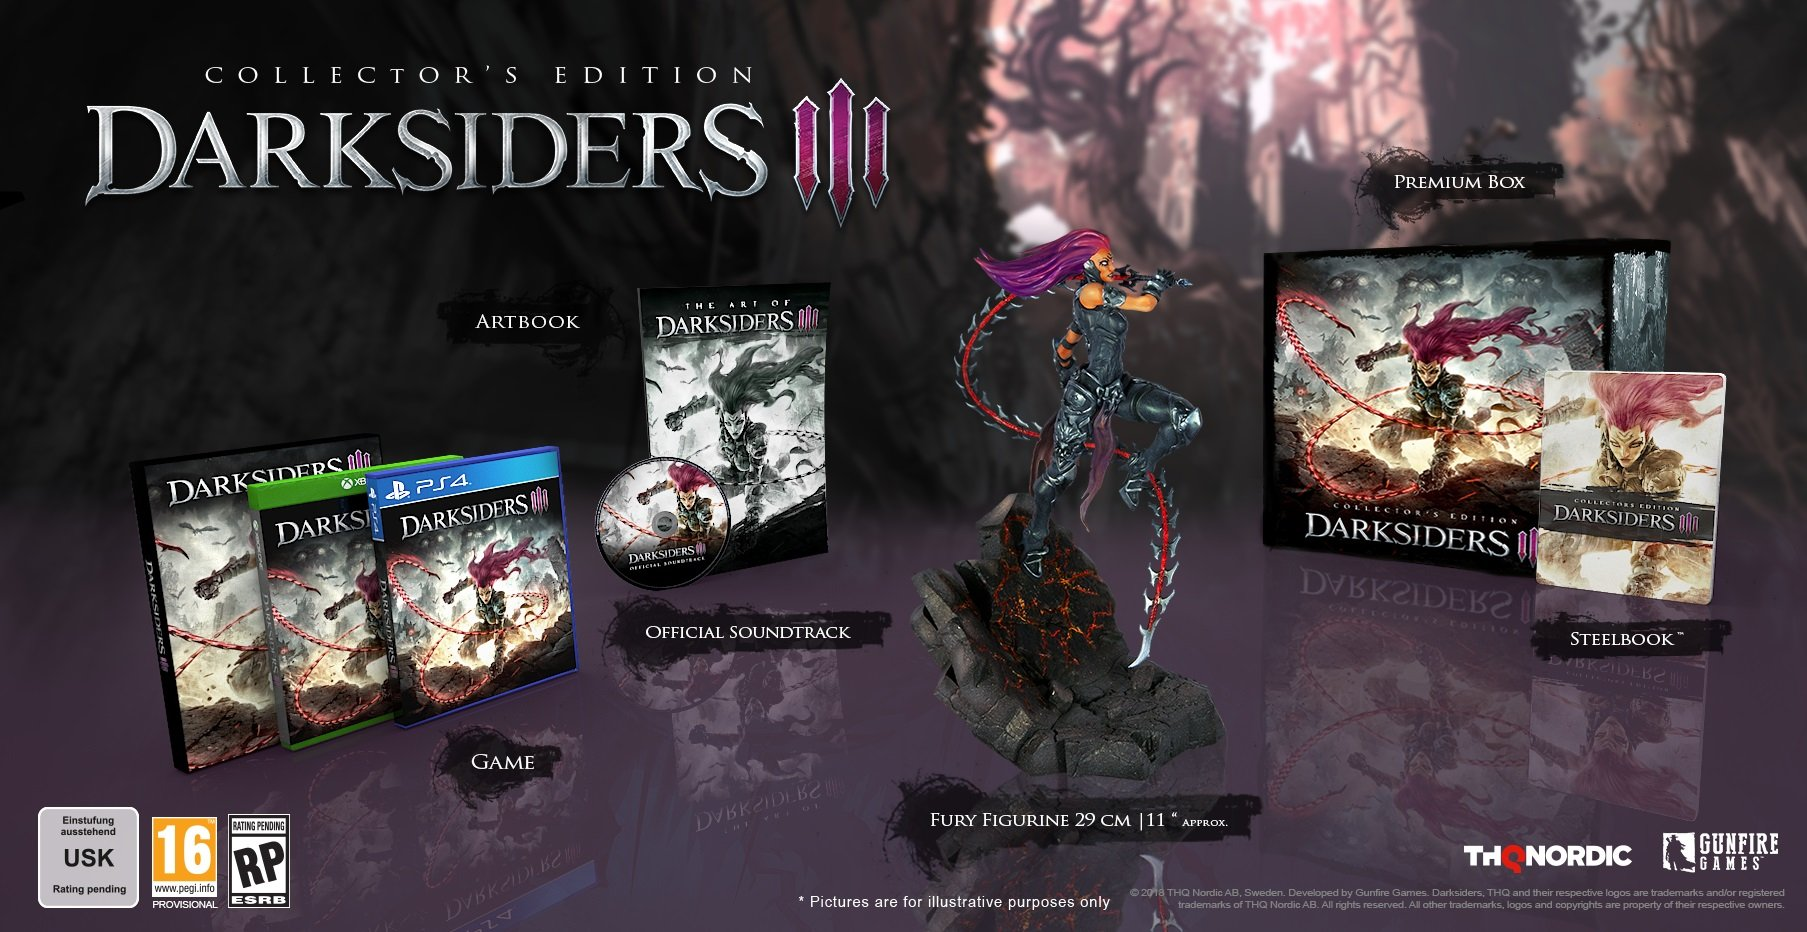 Darksiders ii collector's edition unboxing video esperino.